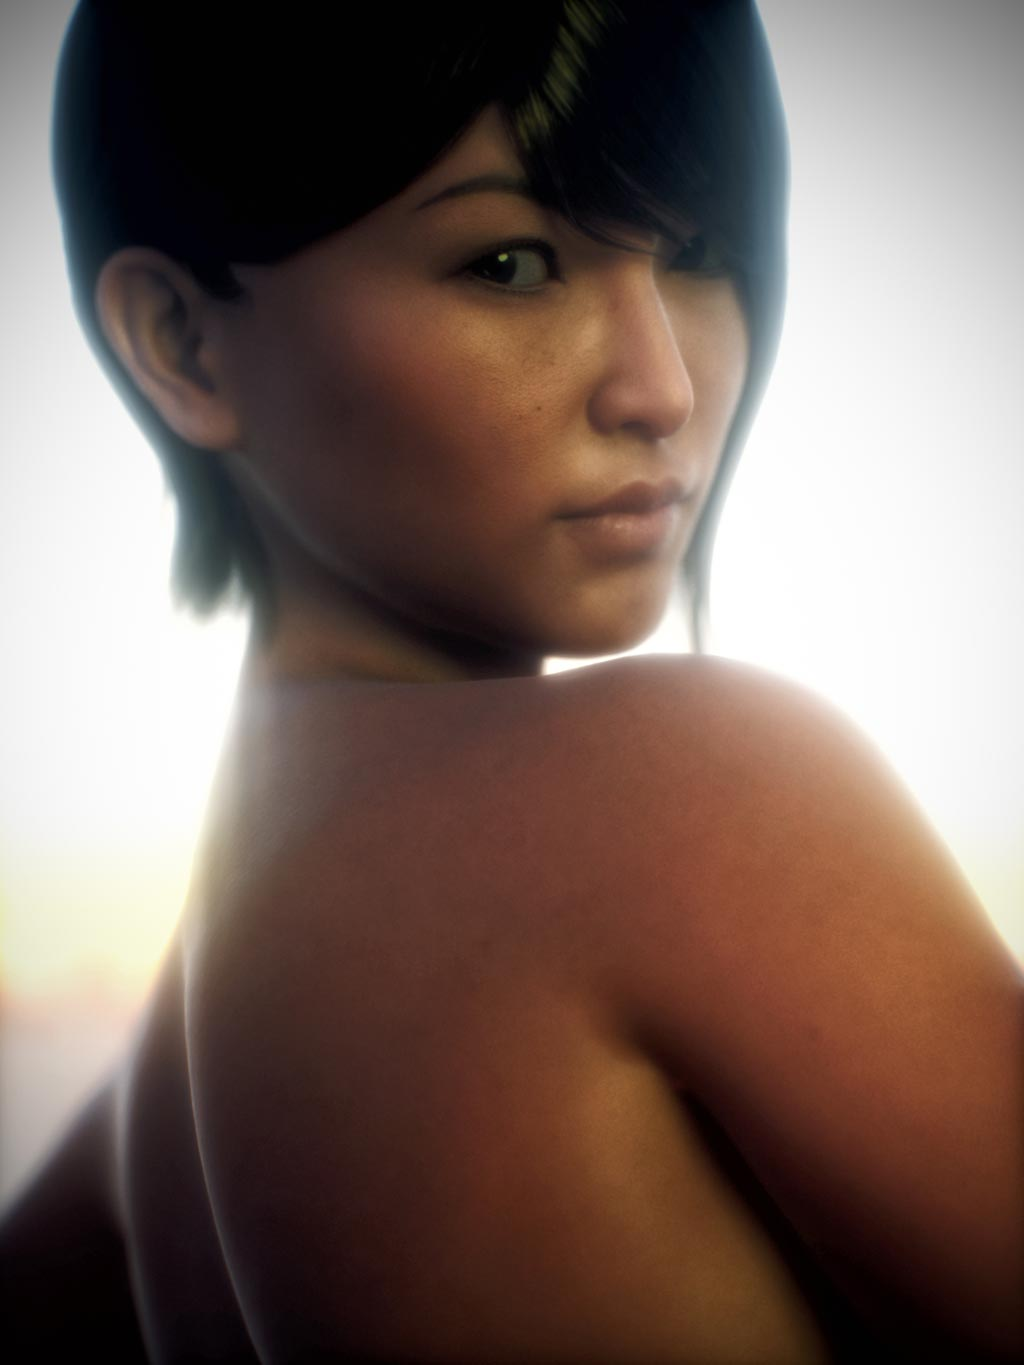 Asian woman portrait with realistic Octane skin shader. Rendered in Daz Studio Octane.